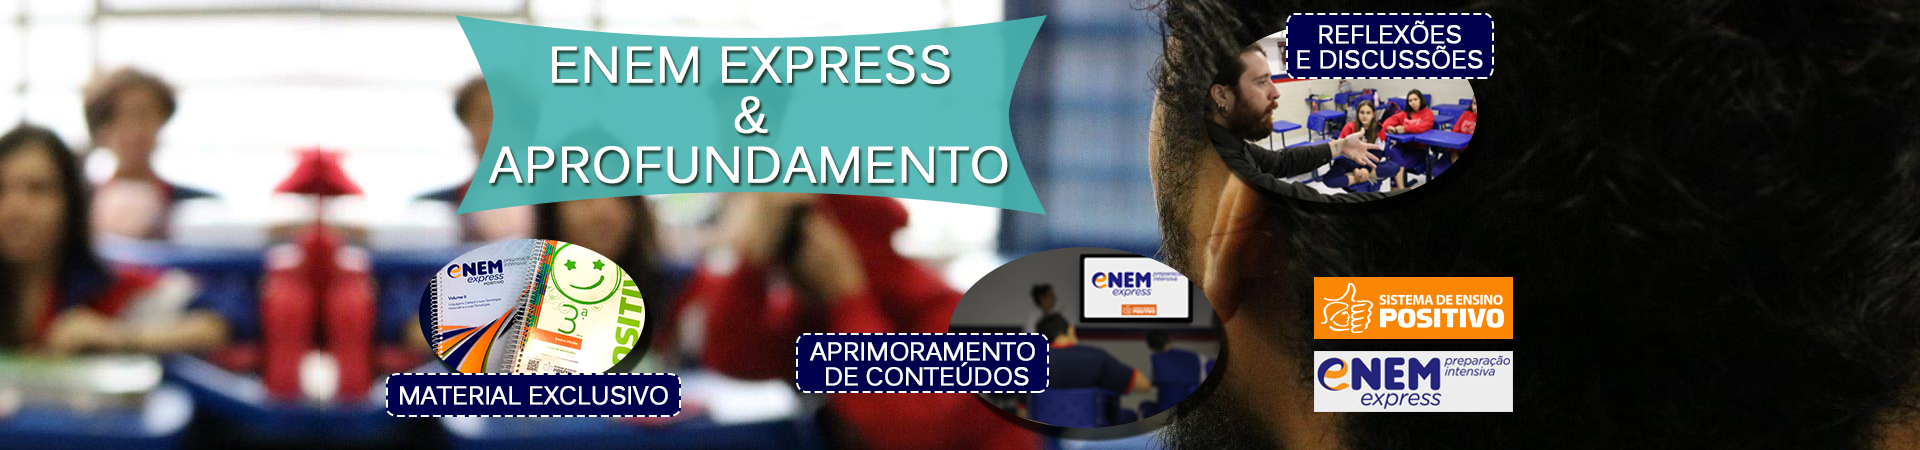 slide-enem-full